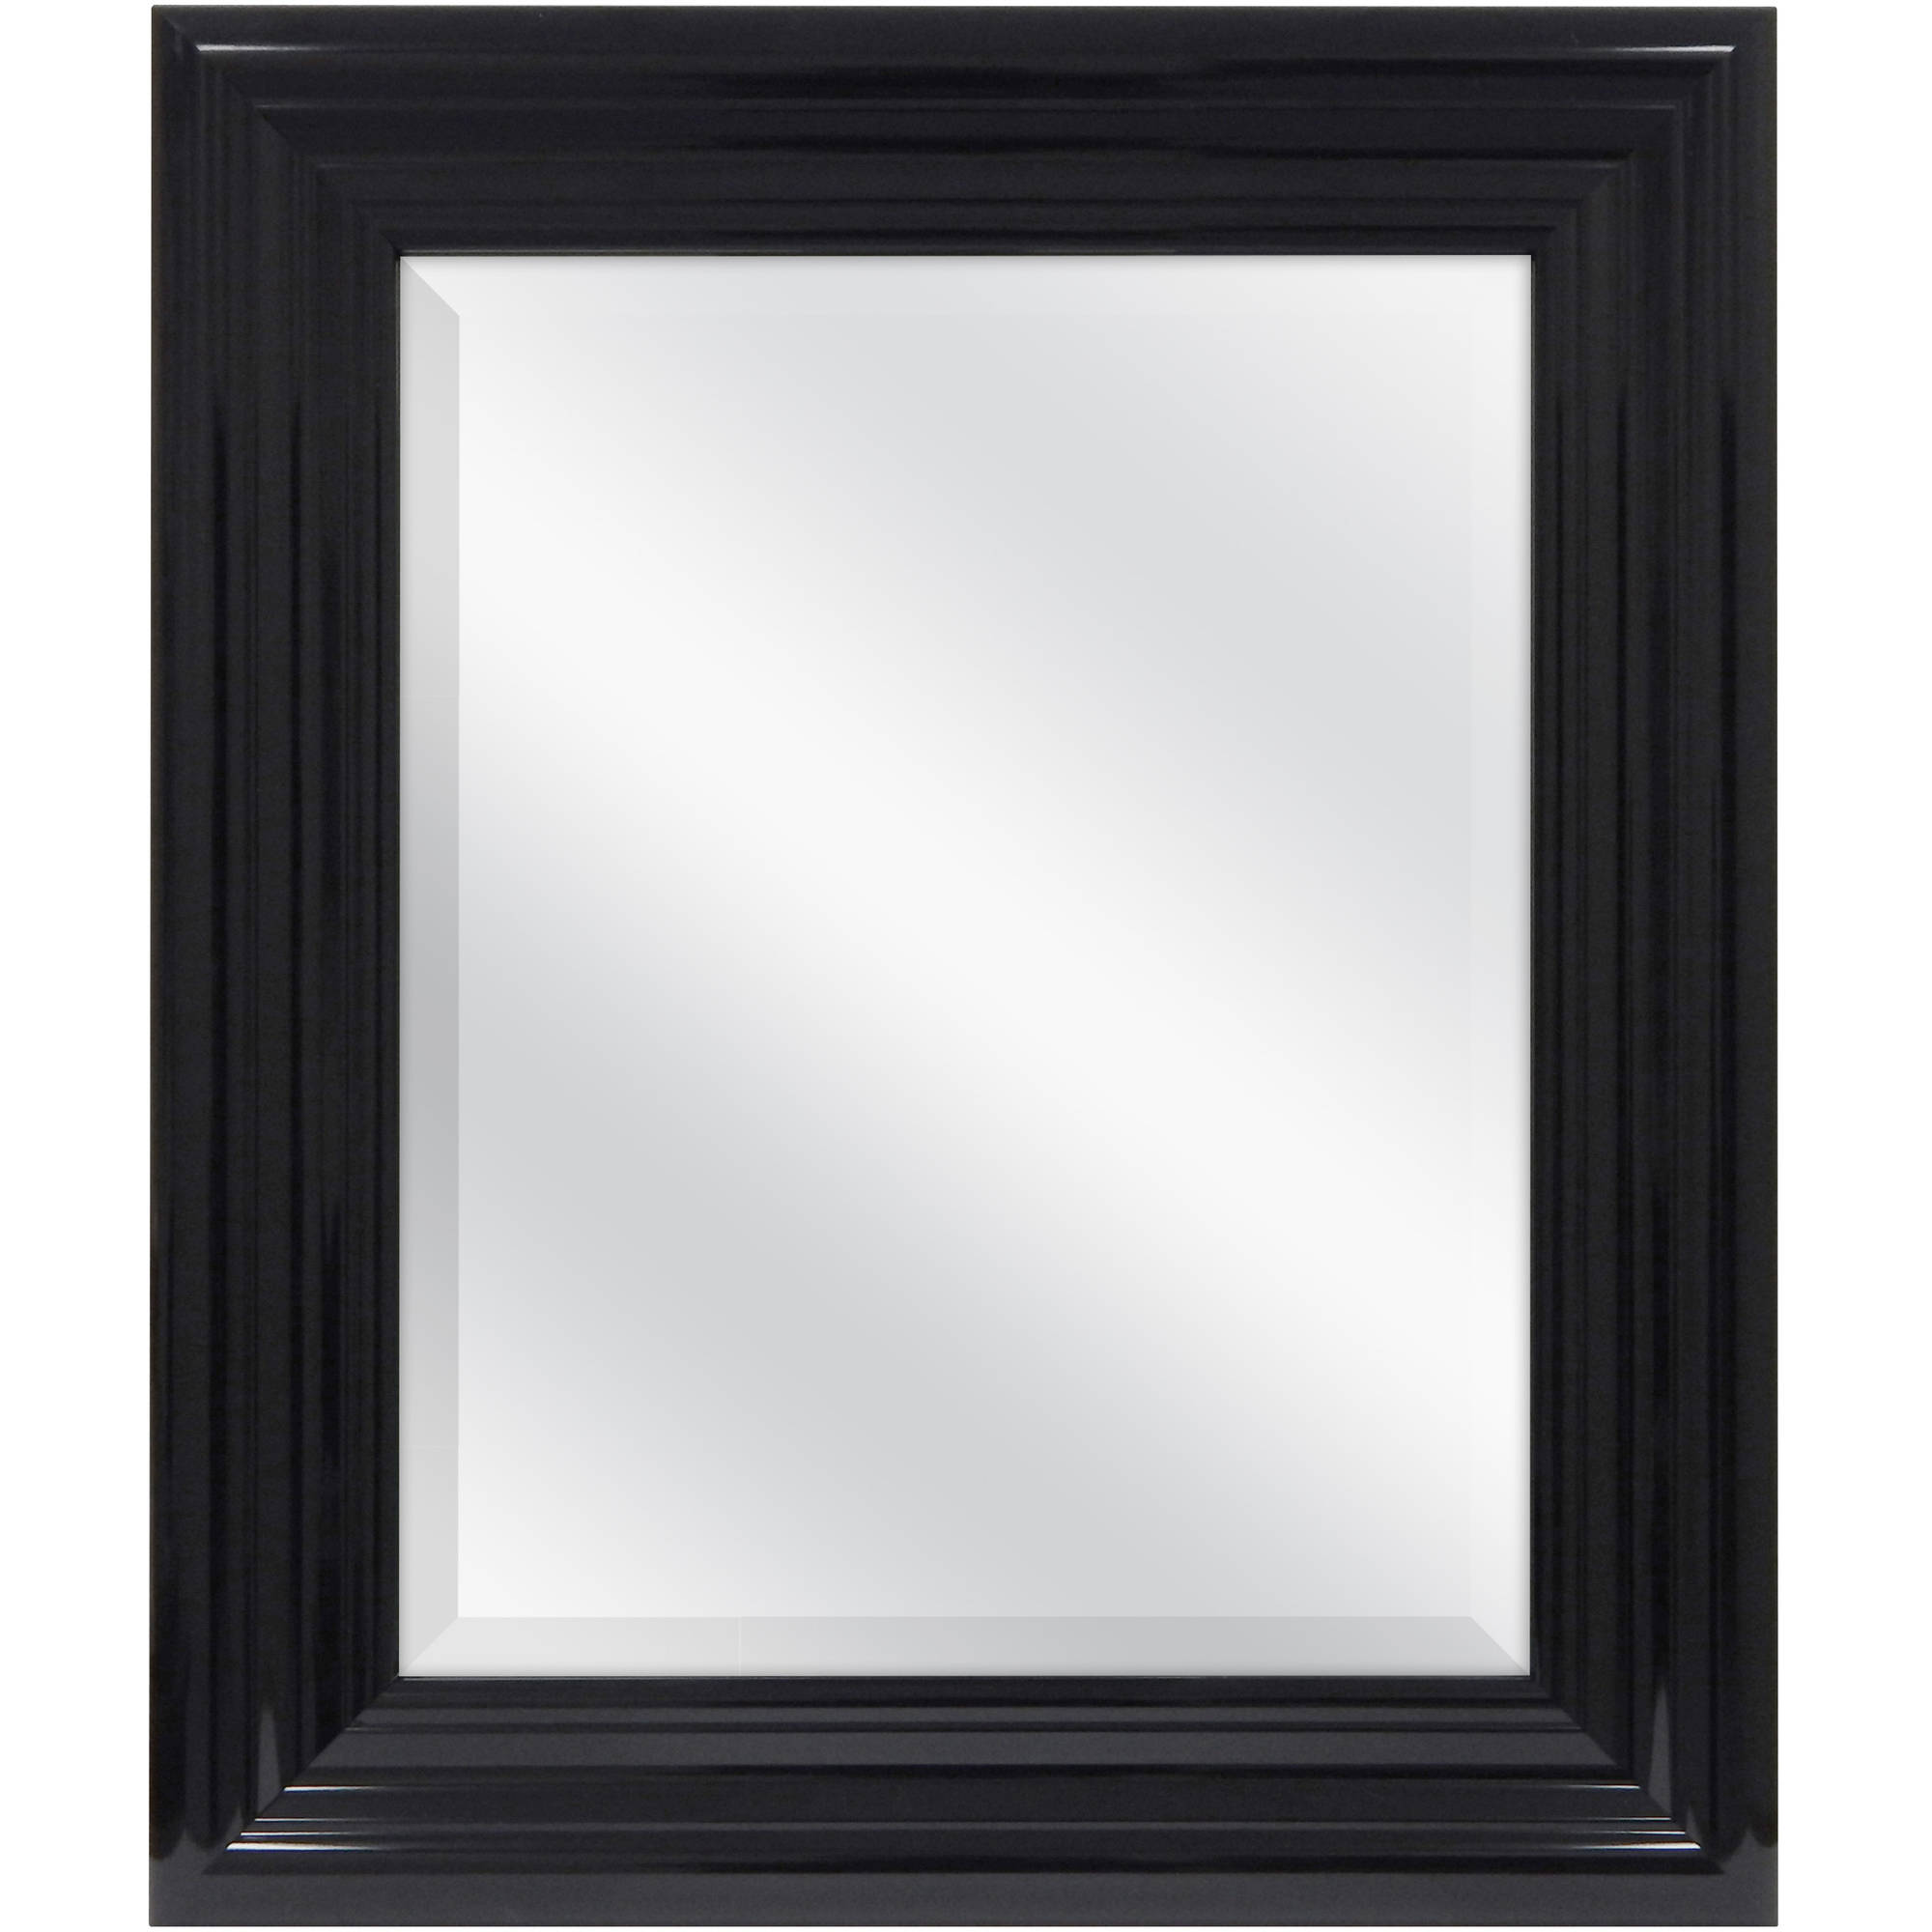 "Better Homes & Gardens 23""x 27"" Black Beveled Wall Mirror"